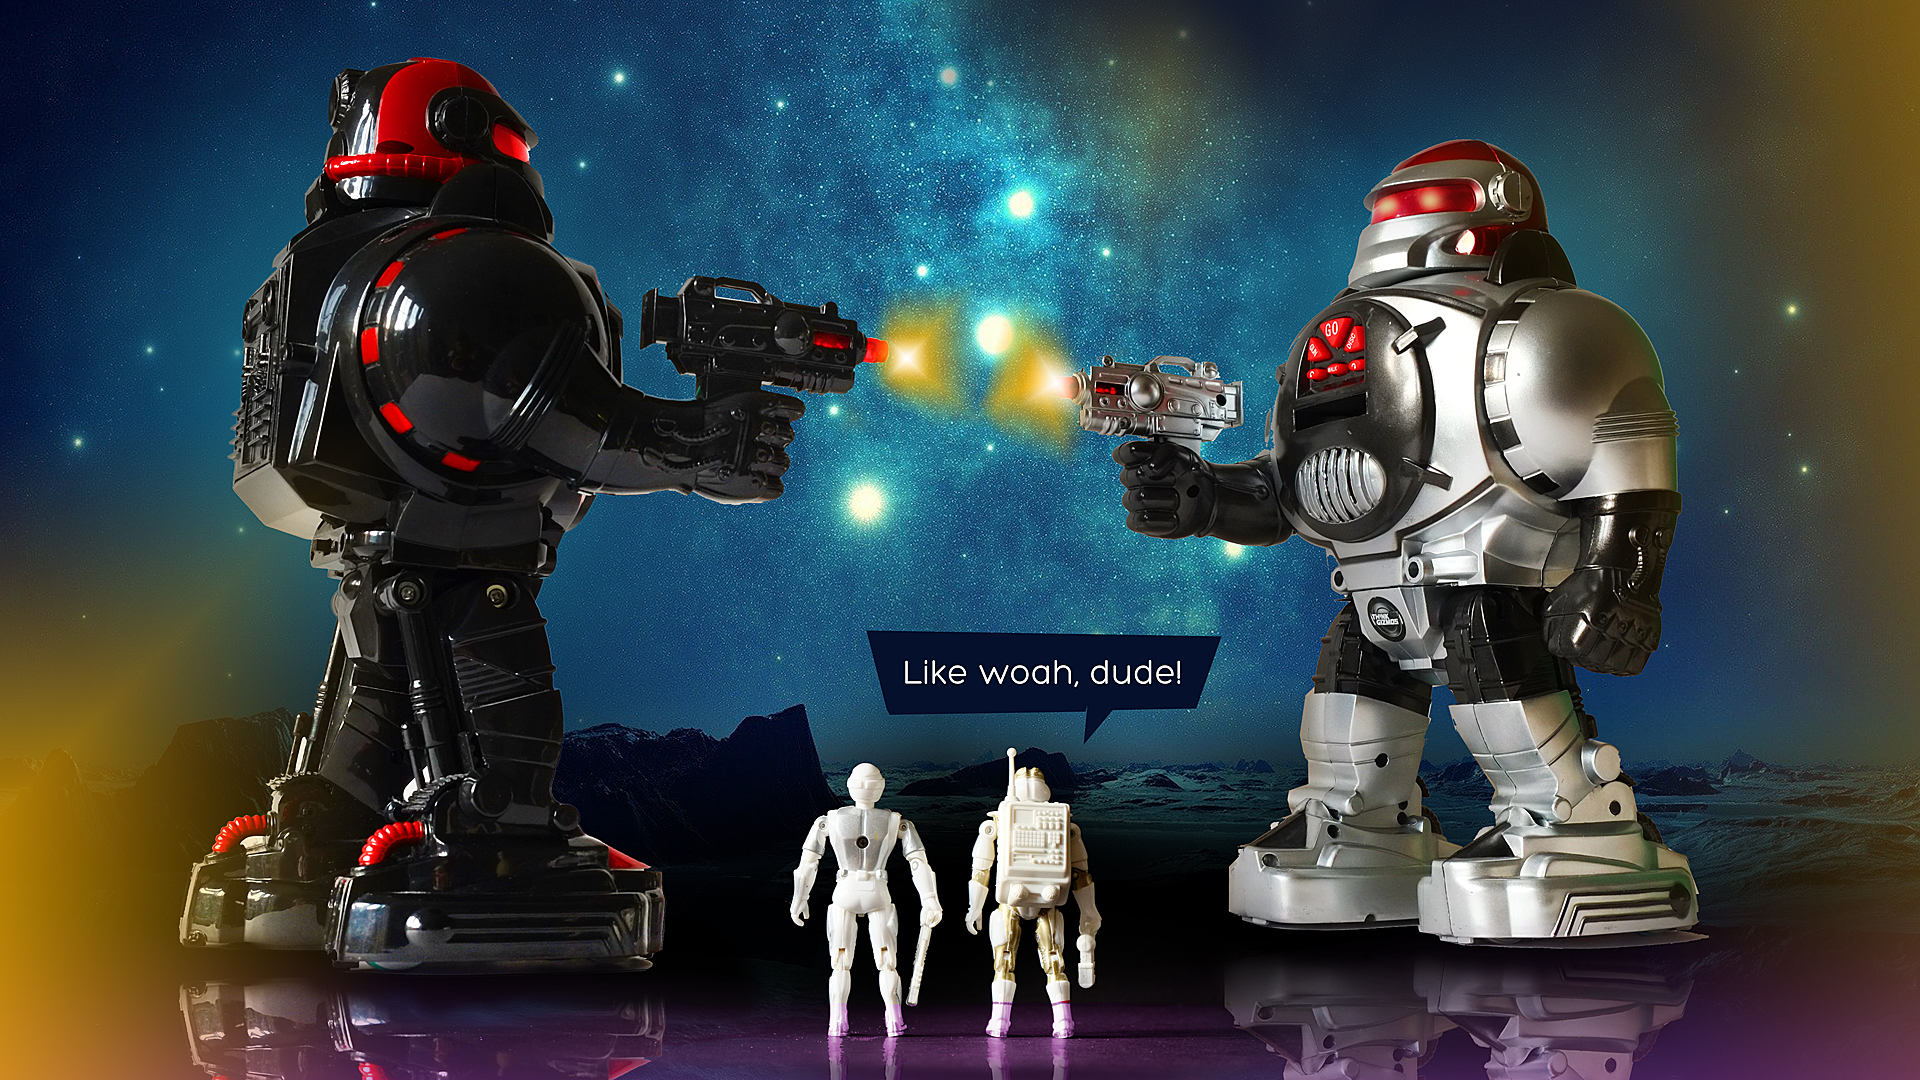 GALACTIC ROBOT BATTLE! // 2 Robo Shooters defend their home planet